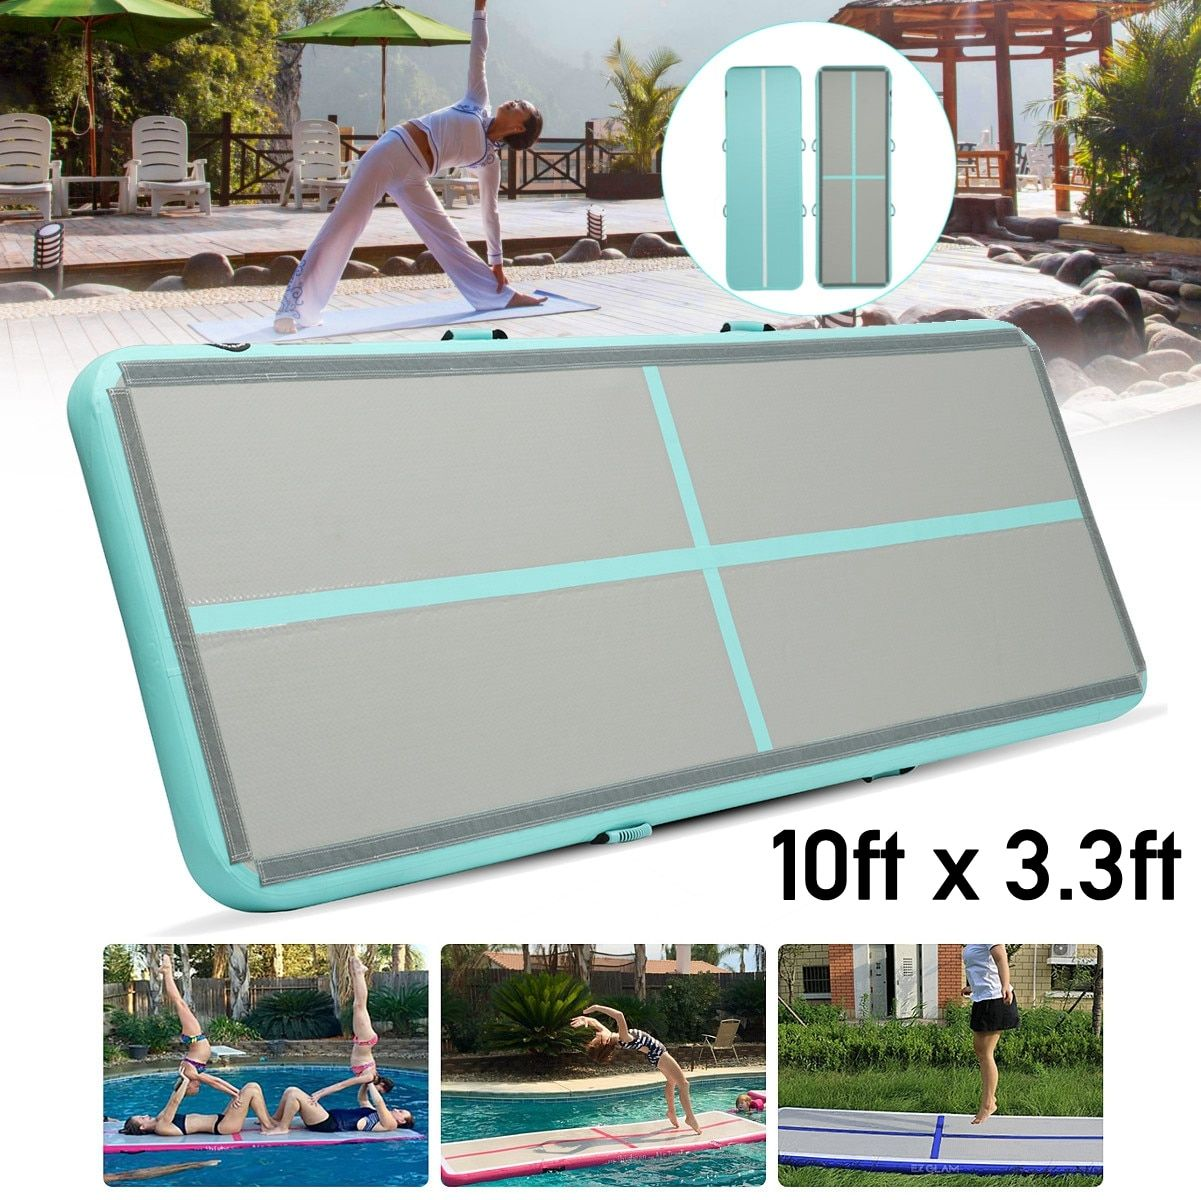 Big Discount 100*300*10cm Airtrack inflatable Air Tumbling Air Track Gymnastics Mats Training Board Equipment Floor